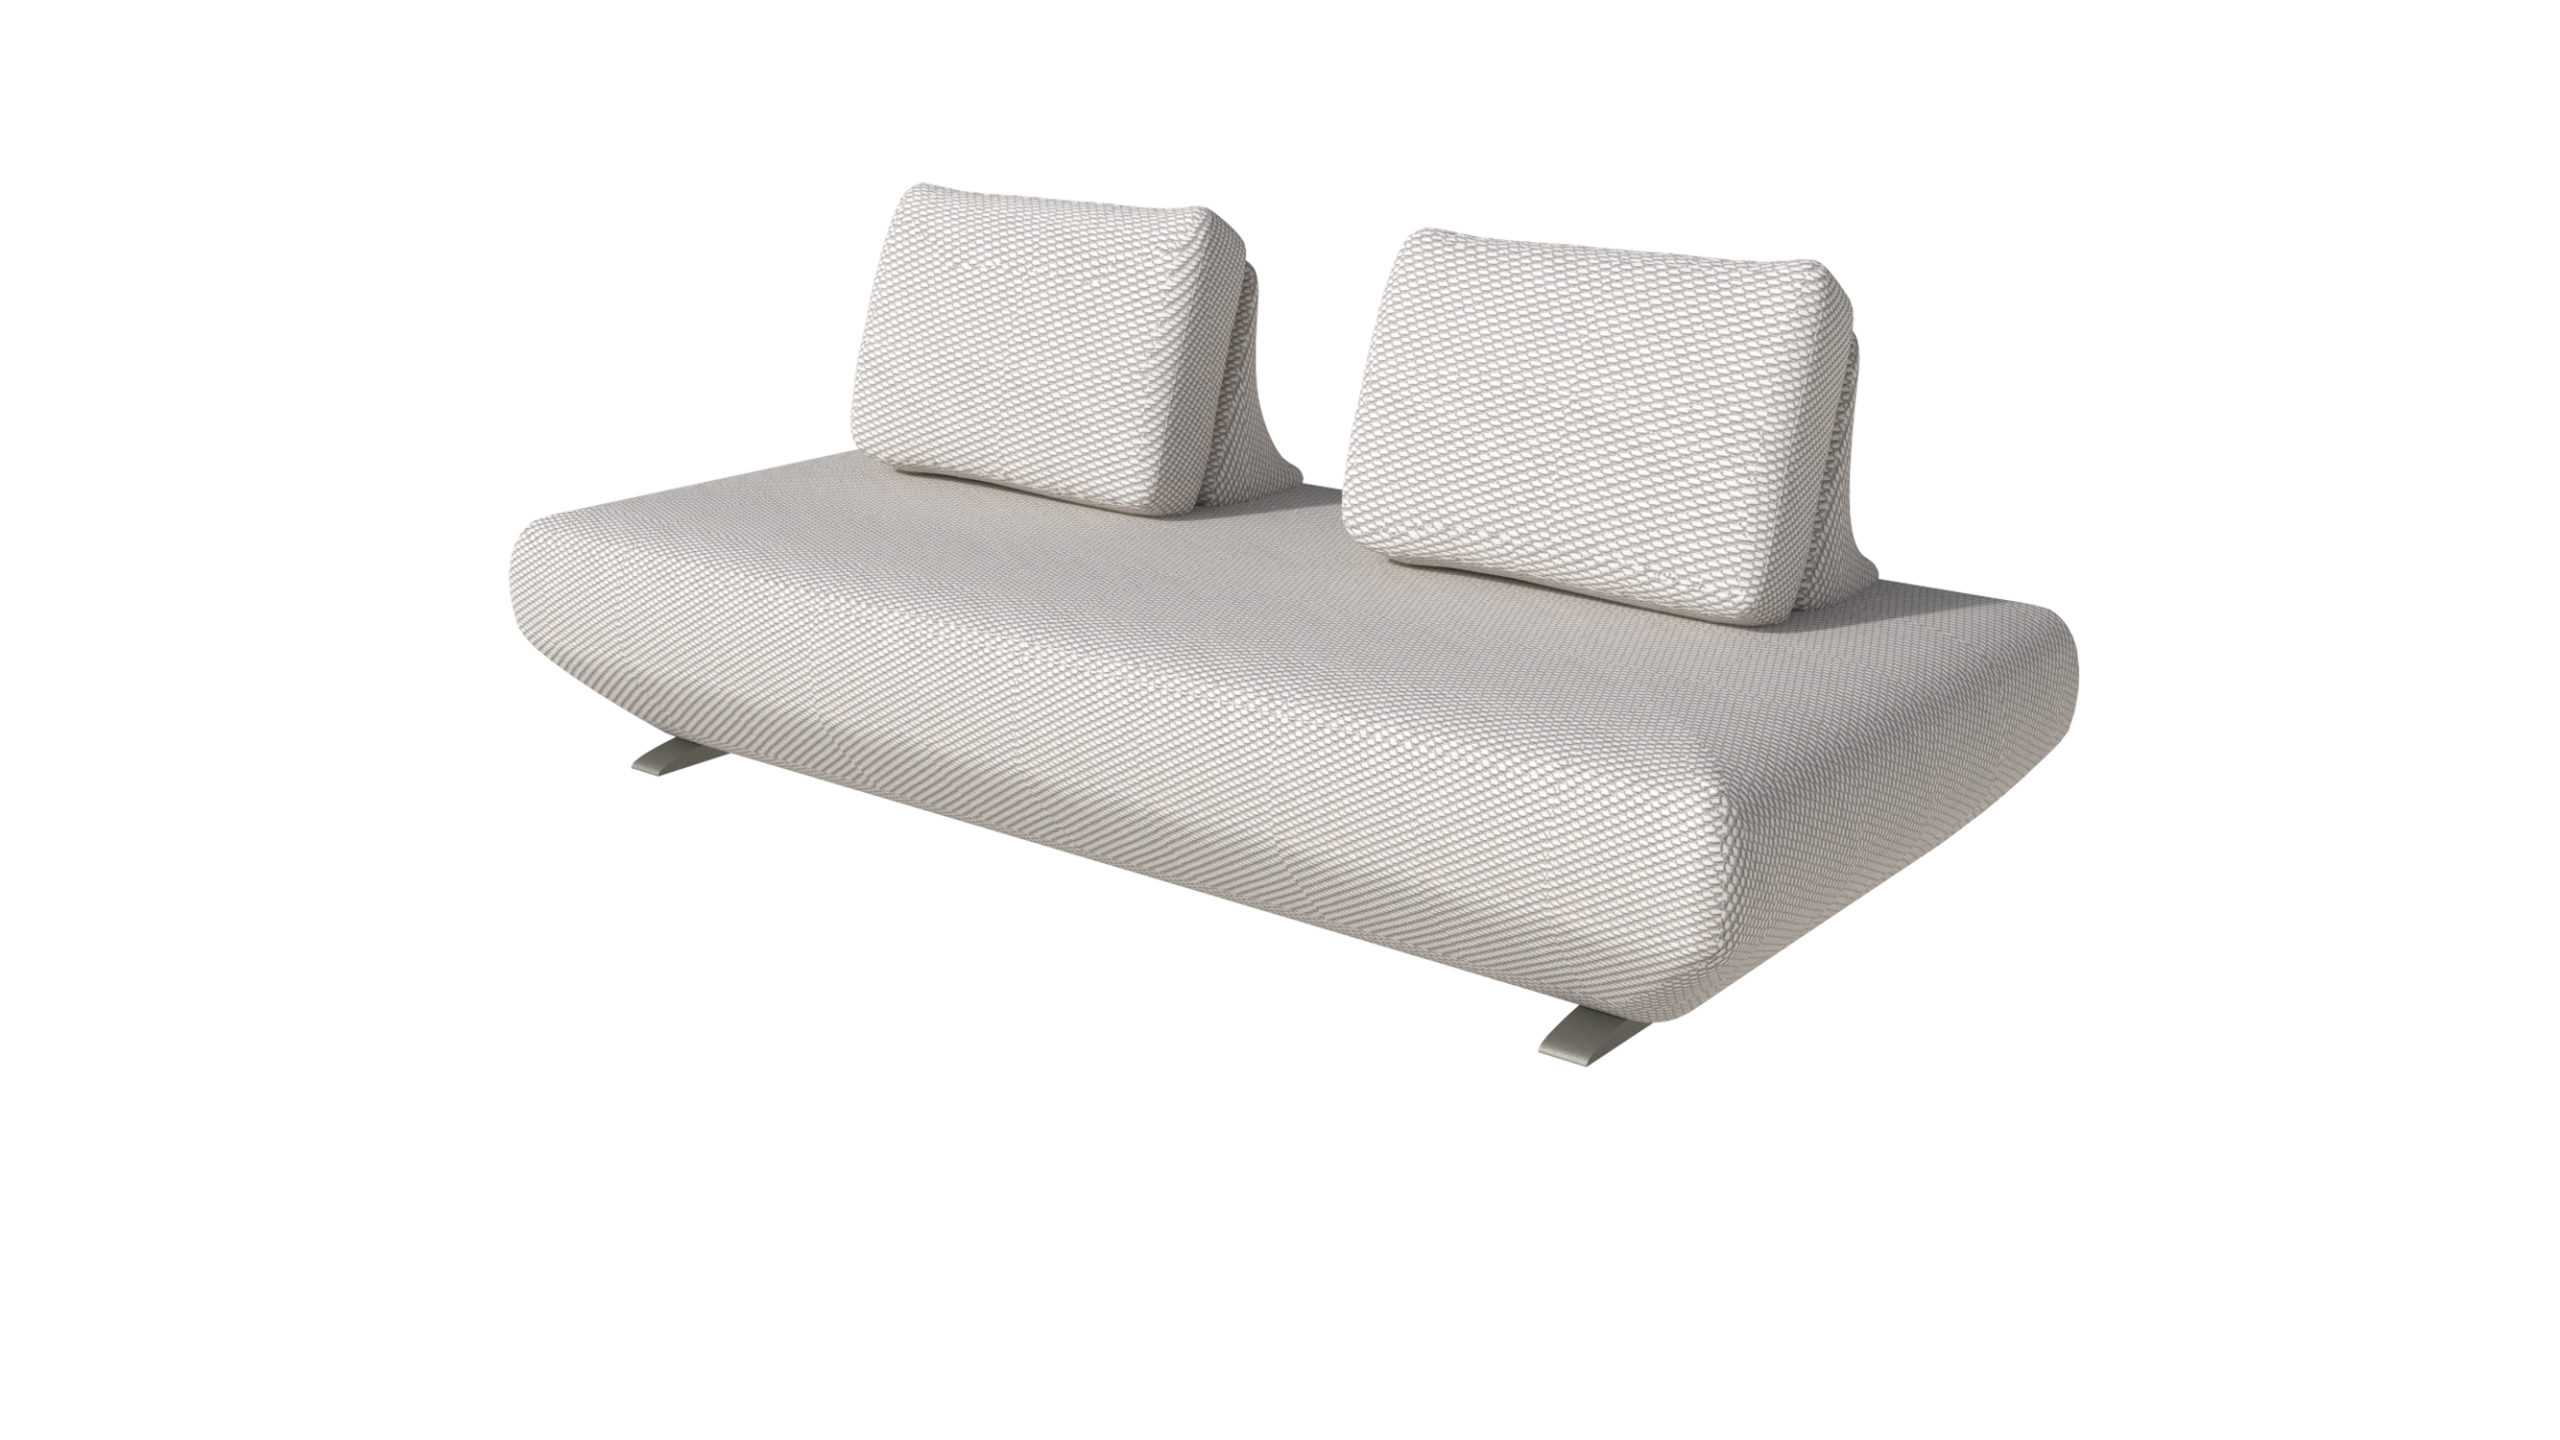 Protege Casual - Outdoor Patio Furniture